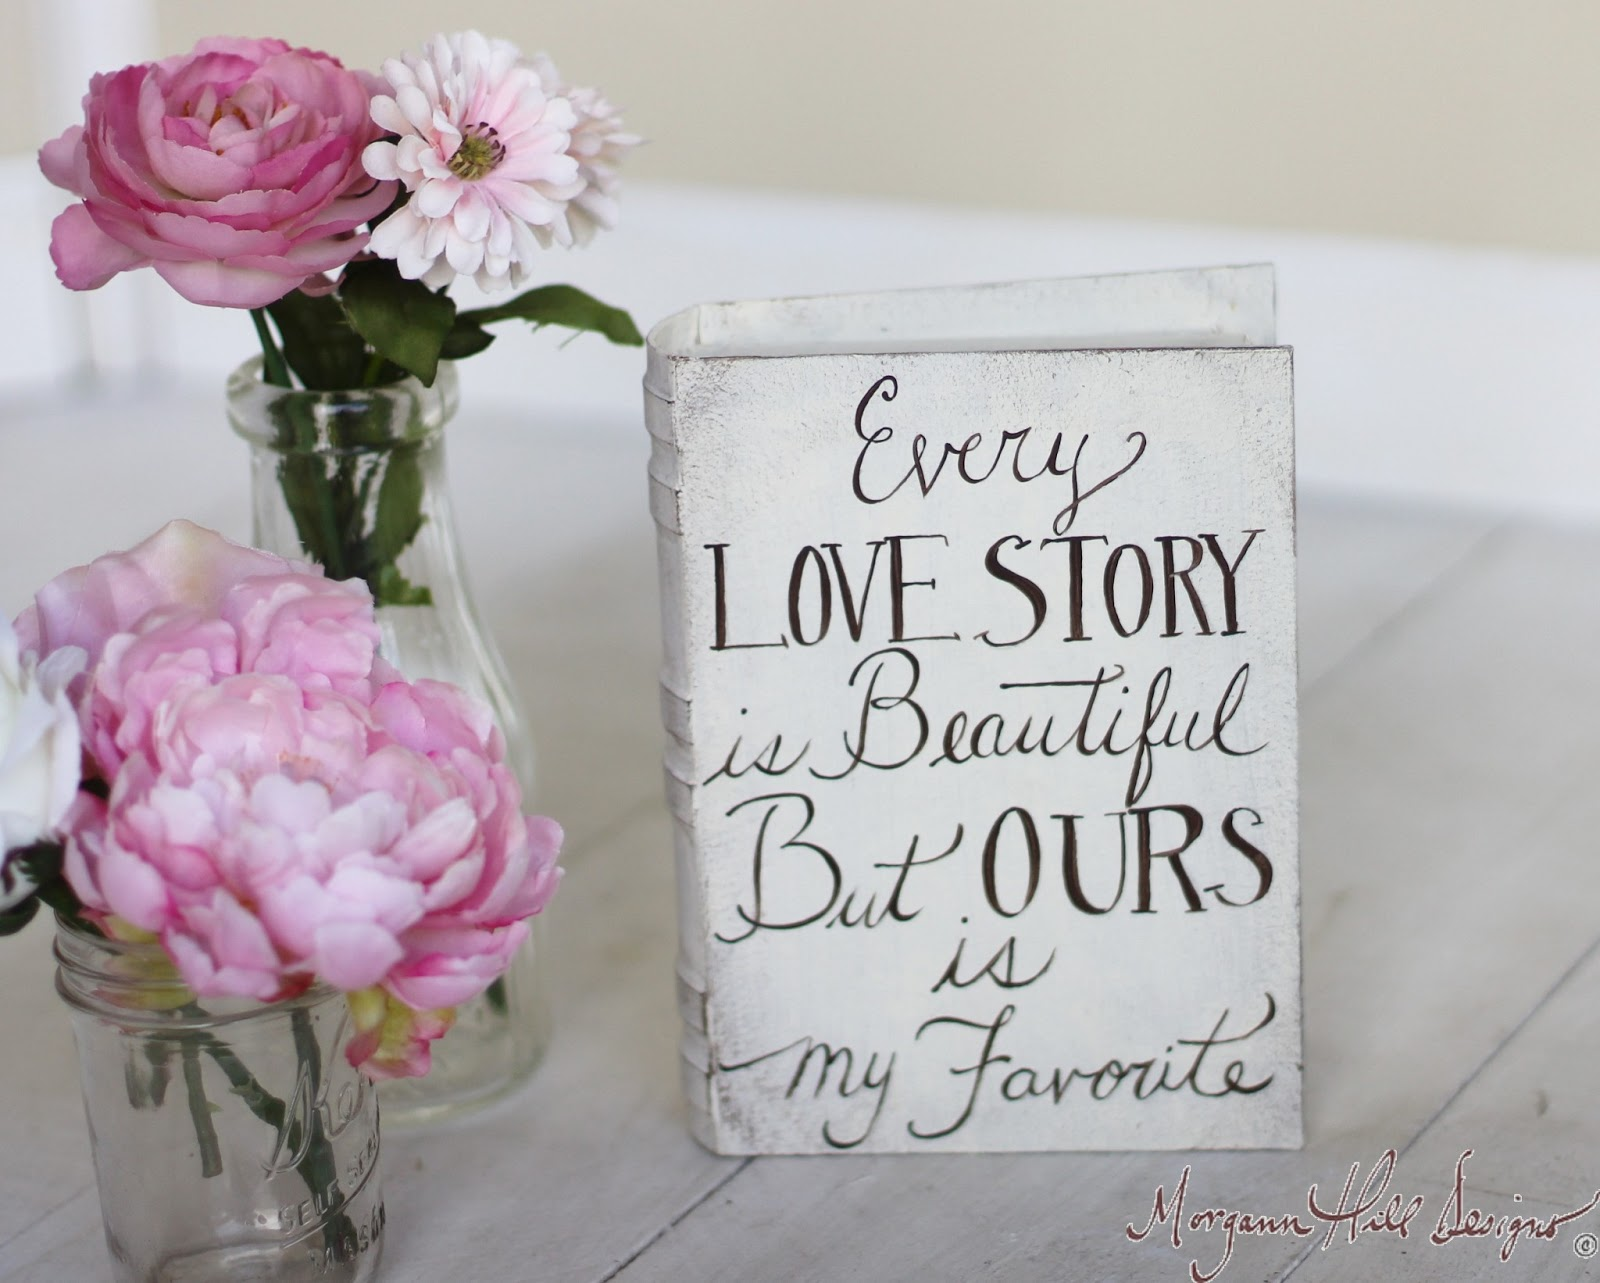 Shabby Chic Pillow Boxes : Morgann Hill Designs: Ring Bearer Pillow Box Shabby Chic Decor Vintage Inspired Hand Painted ...